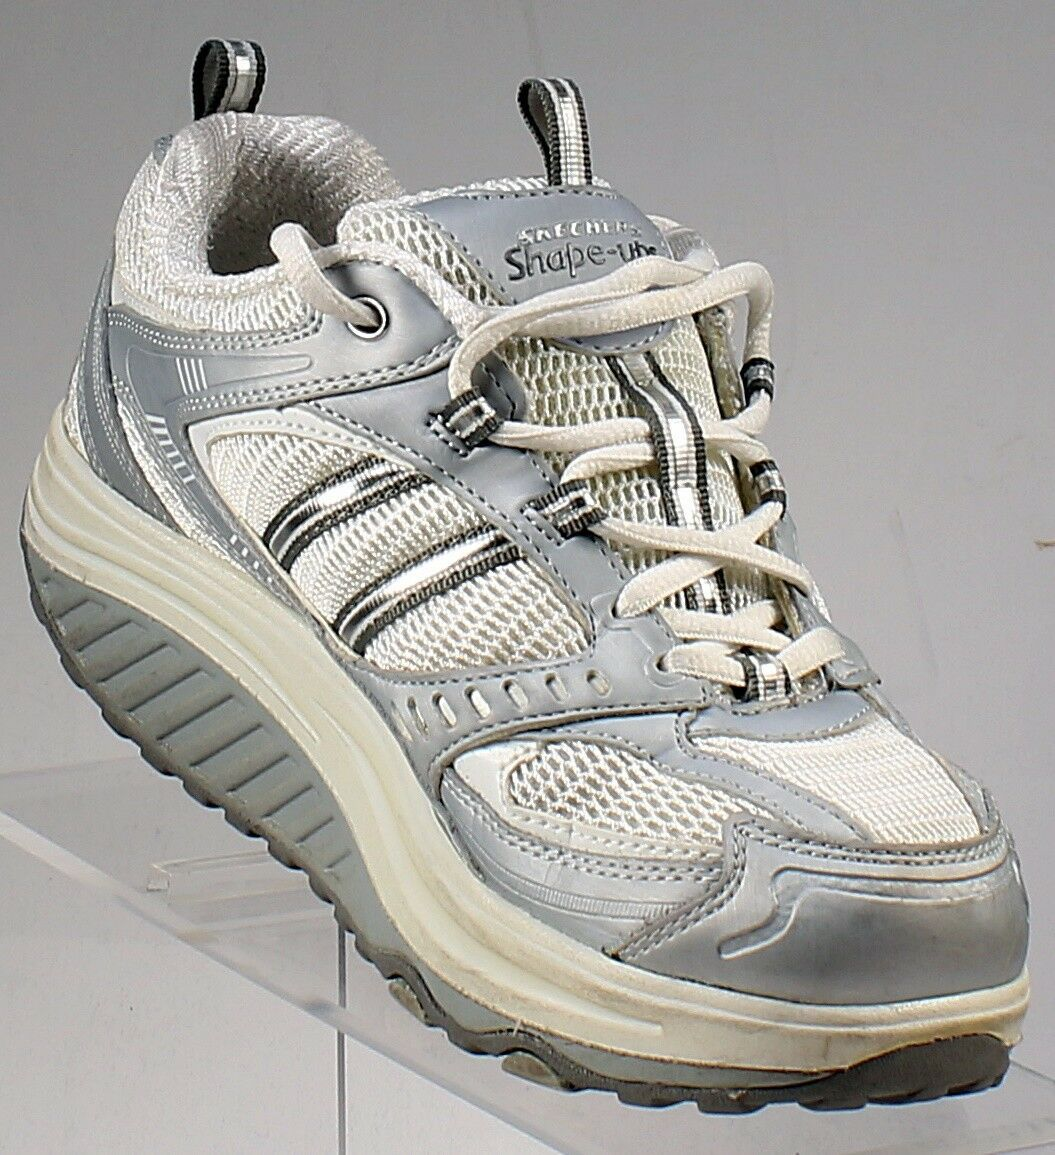 Skechers Shape Ups 11814 Women Rocker Toning Sneaker Shoe 7.5 training athletic image 3